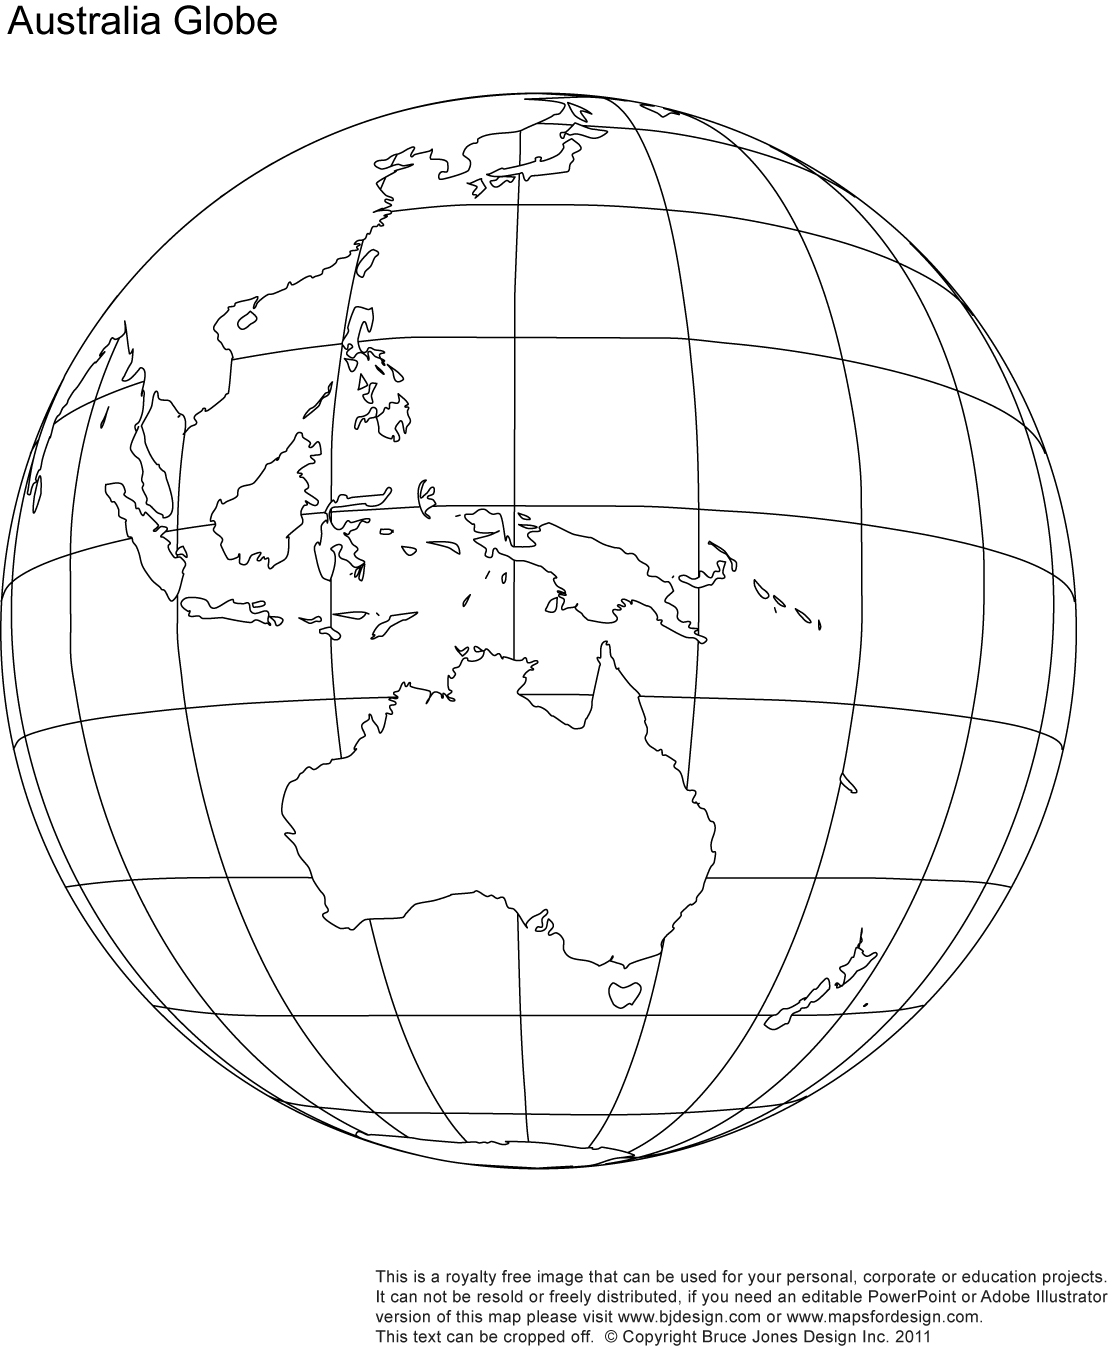 Australia Globe Map, blank, printable, outline, royalty free, jpg map